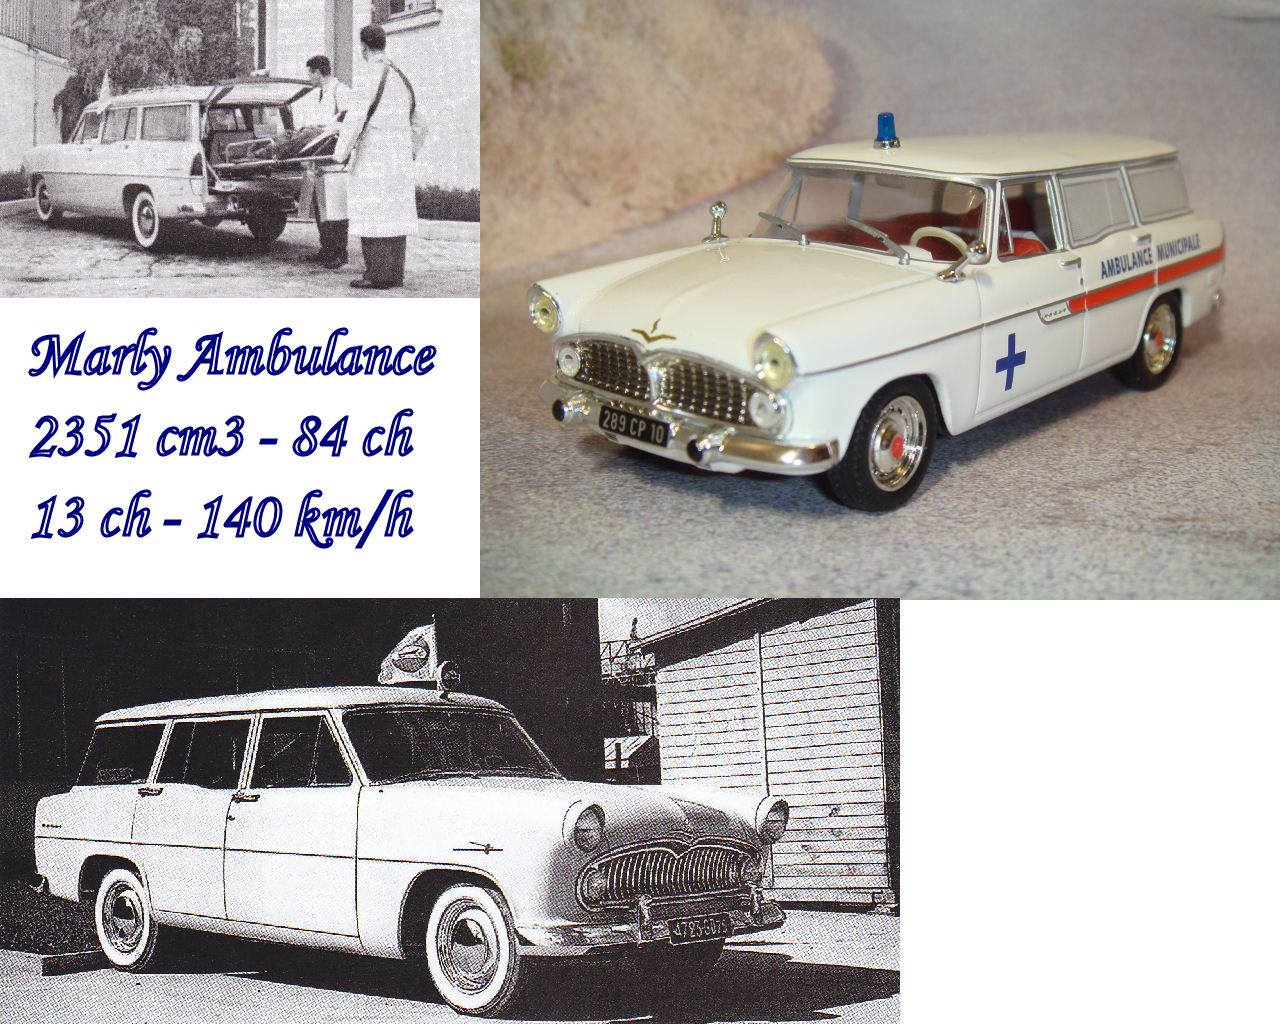 simca-vedette-marly-ambulance-jaar-1956-1959-1